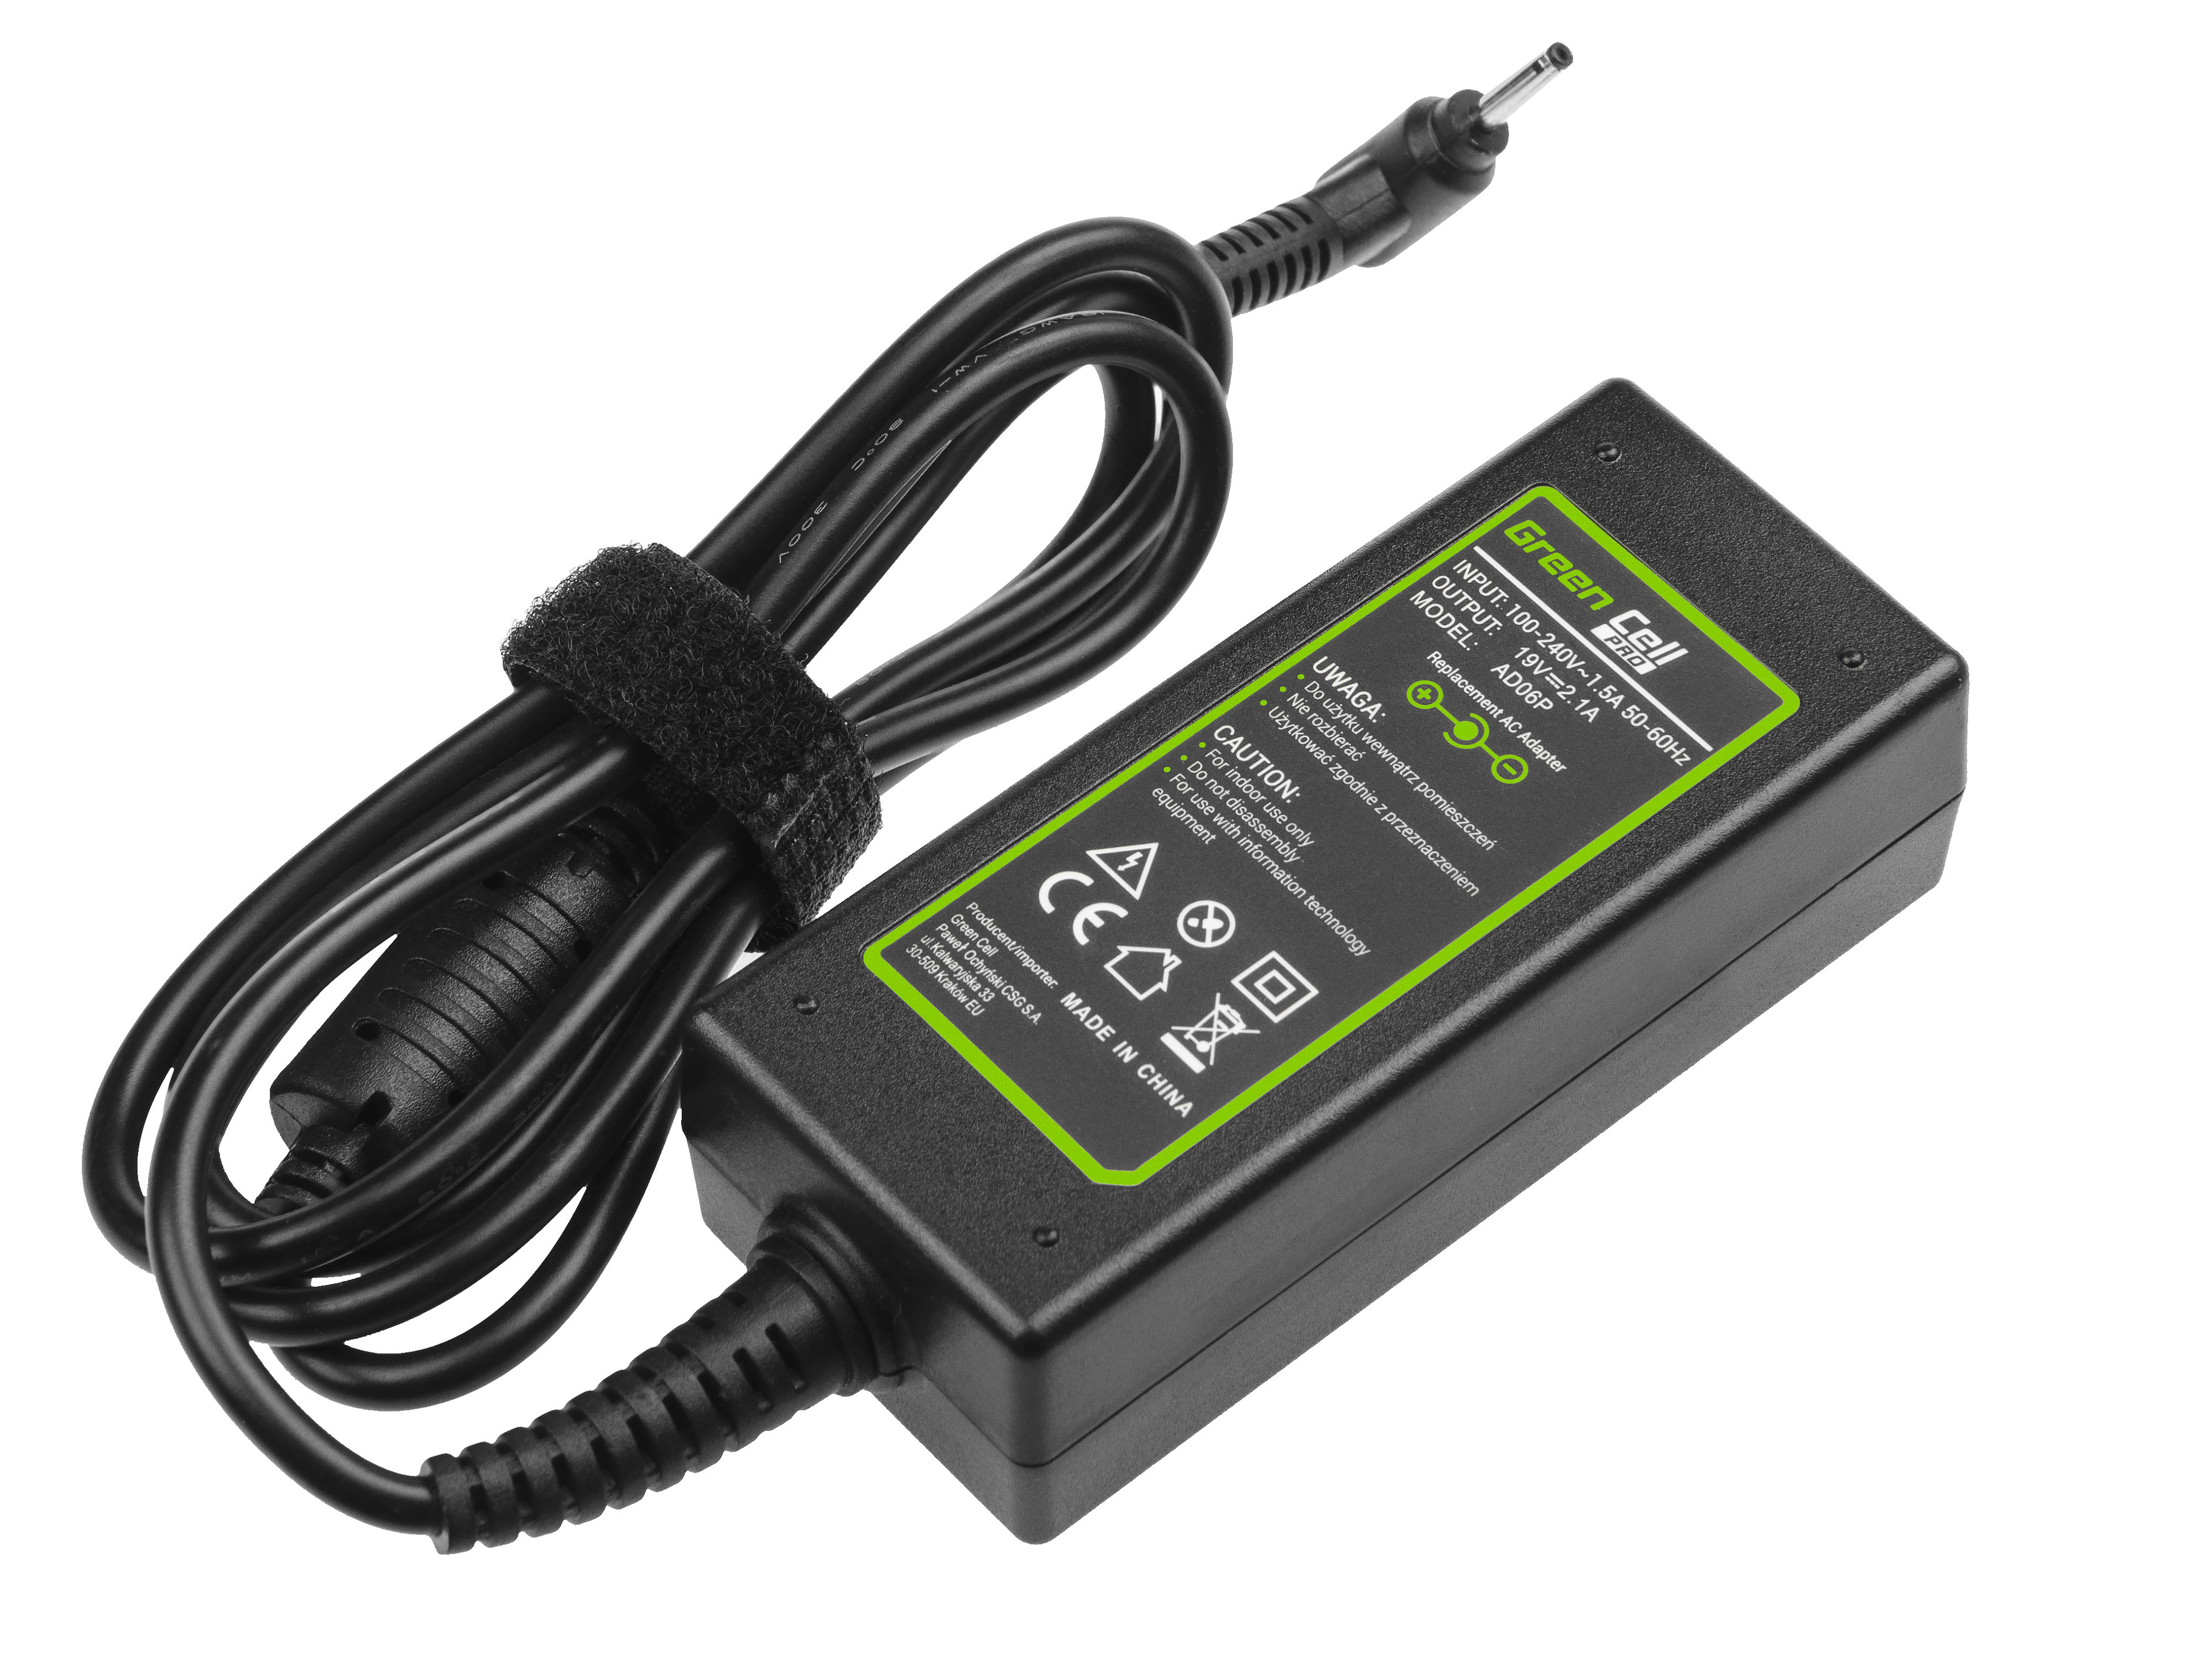 Green Cell PRO Charger  AC Adapter for Asus Eee PC 1001PX 1001PXD 1005HA 1201HA 1201N 1215B 1215N X101 X101CH X101H 19V 2.1A 40